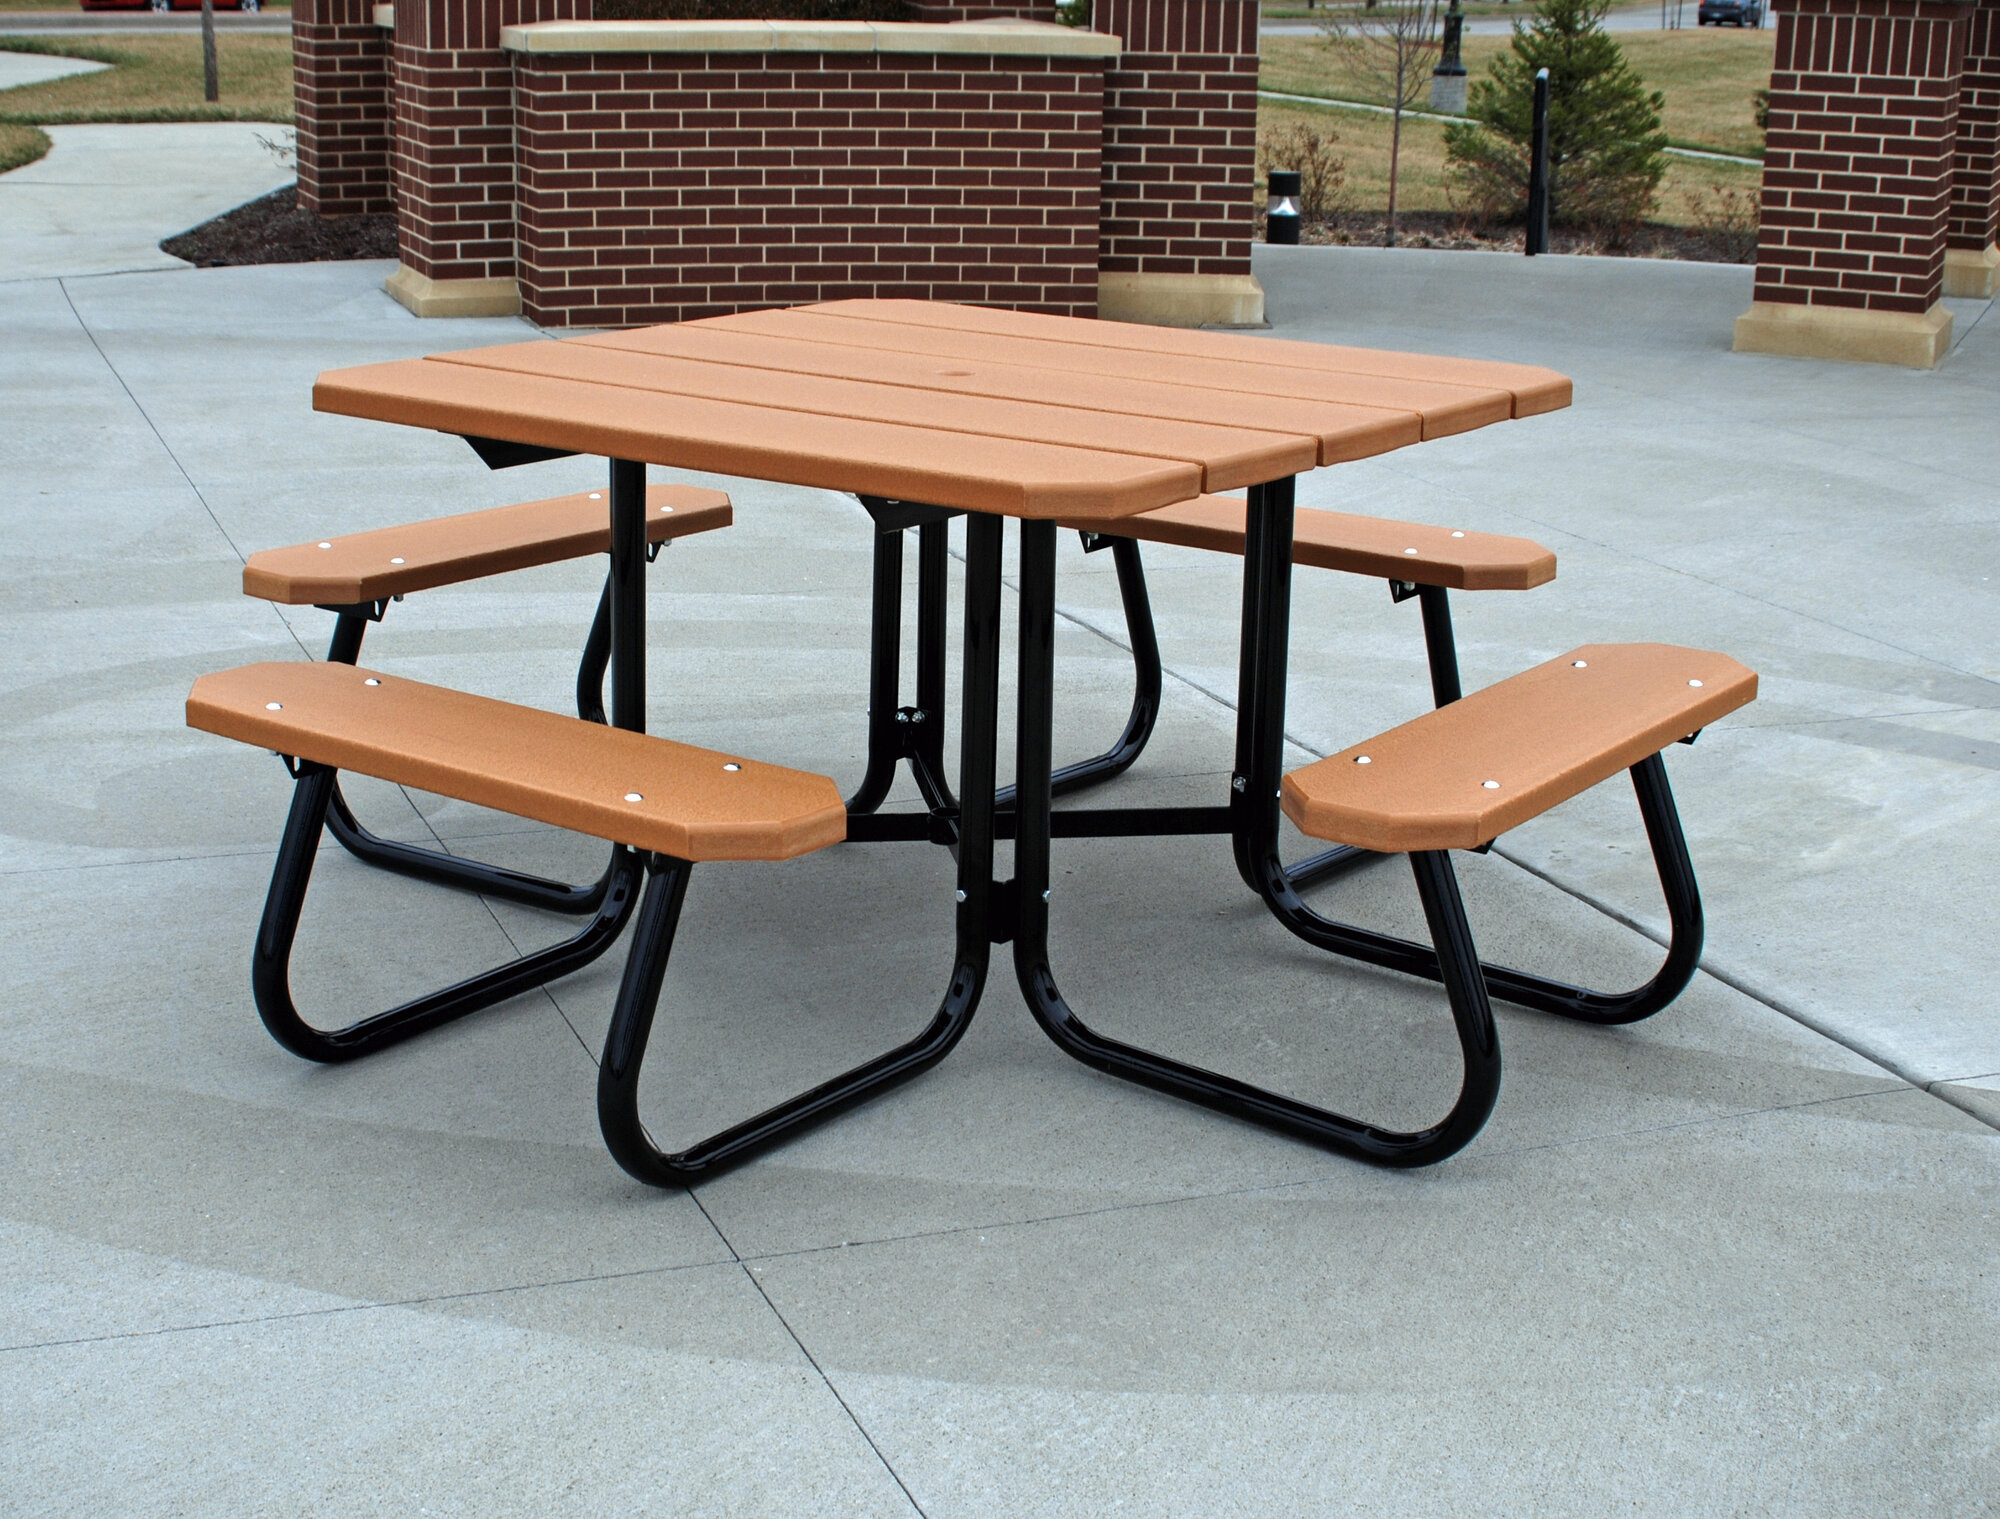 Plastic Picnic Table : Details about Frog Furnishings Recycled Plastic Square Picnic Table